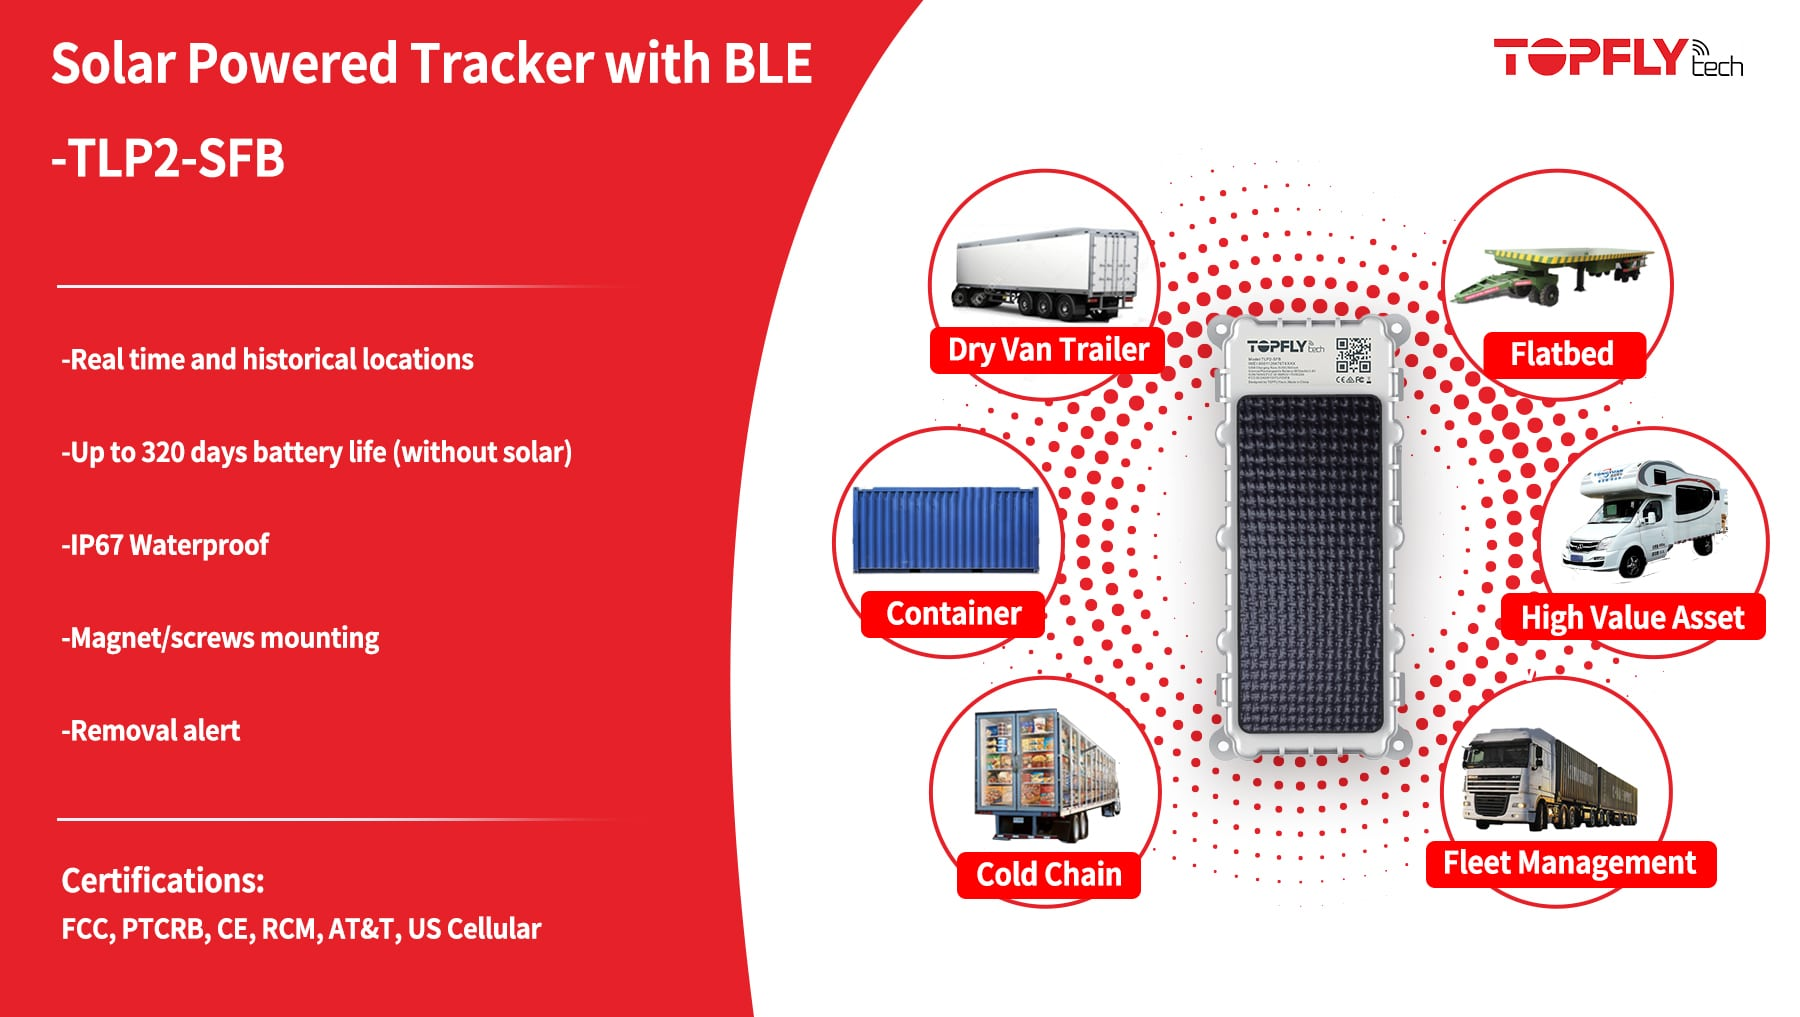 TLP2-SFB | Large Solar Tracker with BLE 5.0